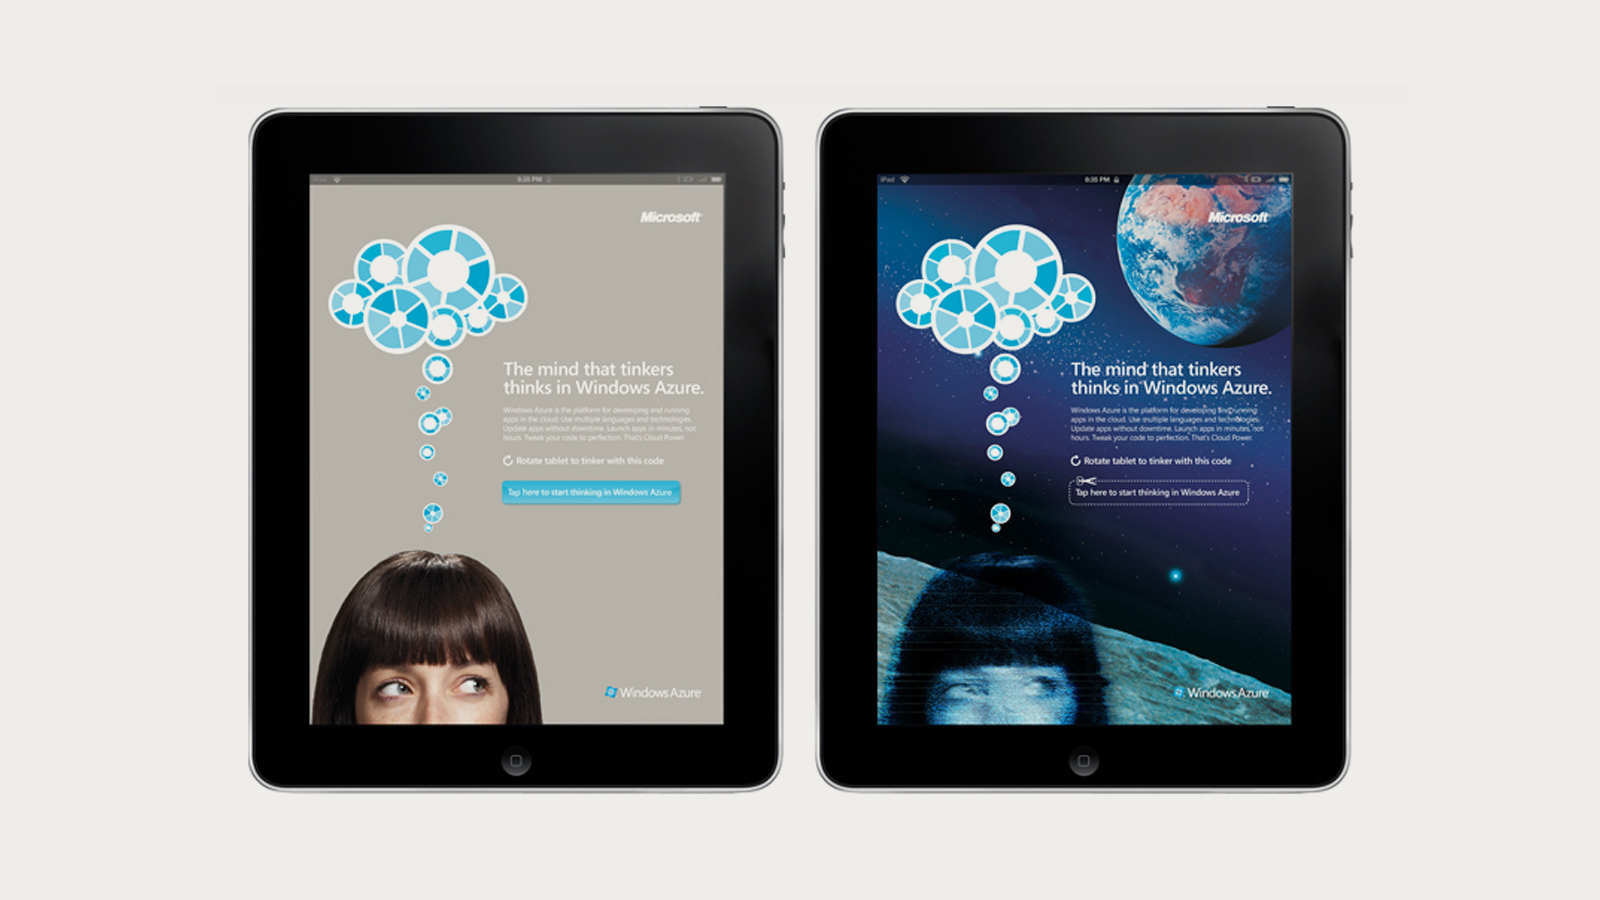 Microsoft Azure: Interactive ad for WIRED magazine